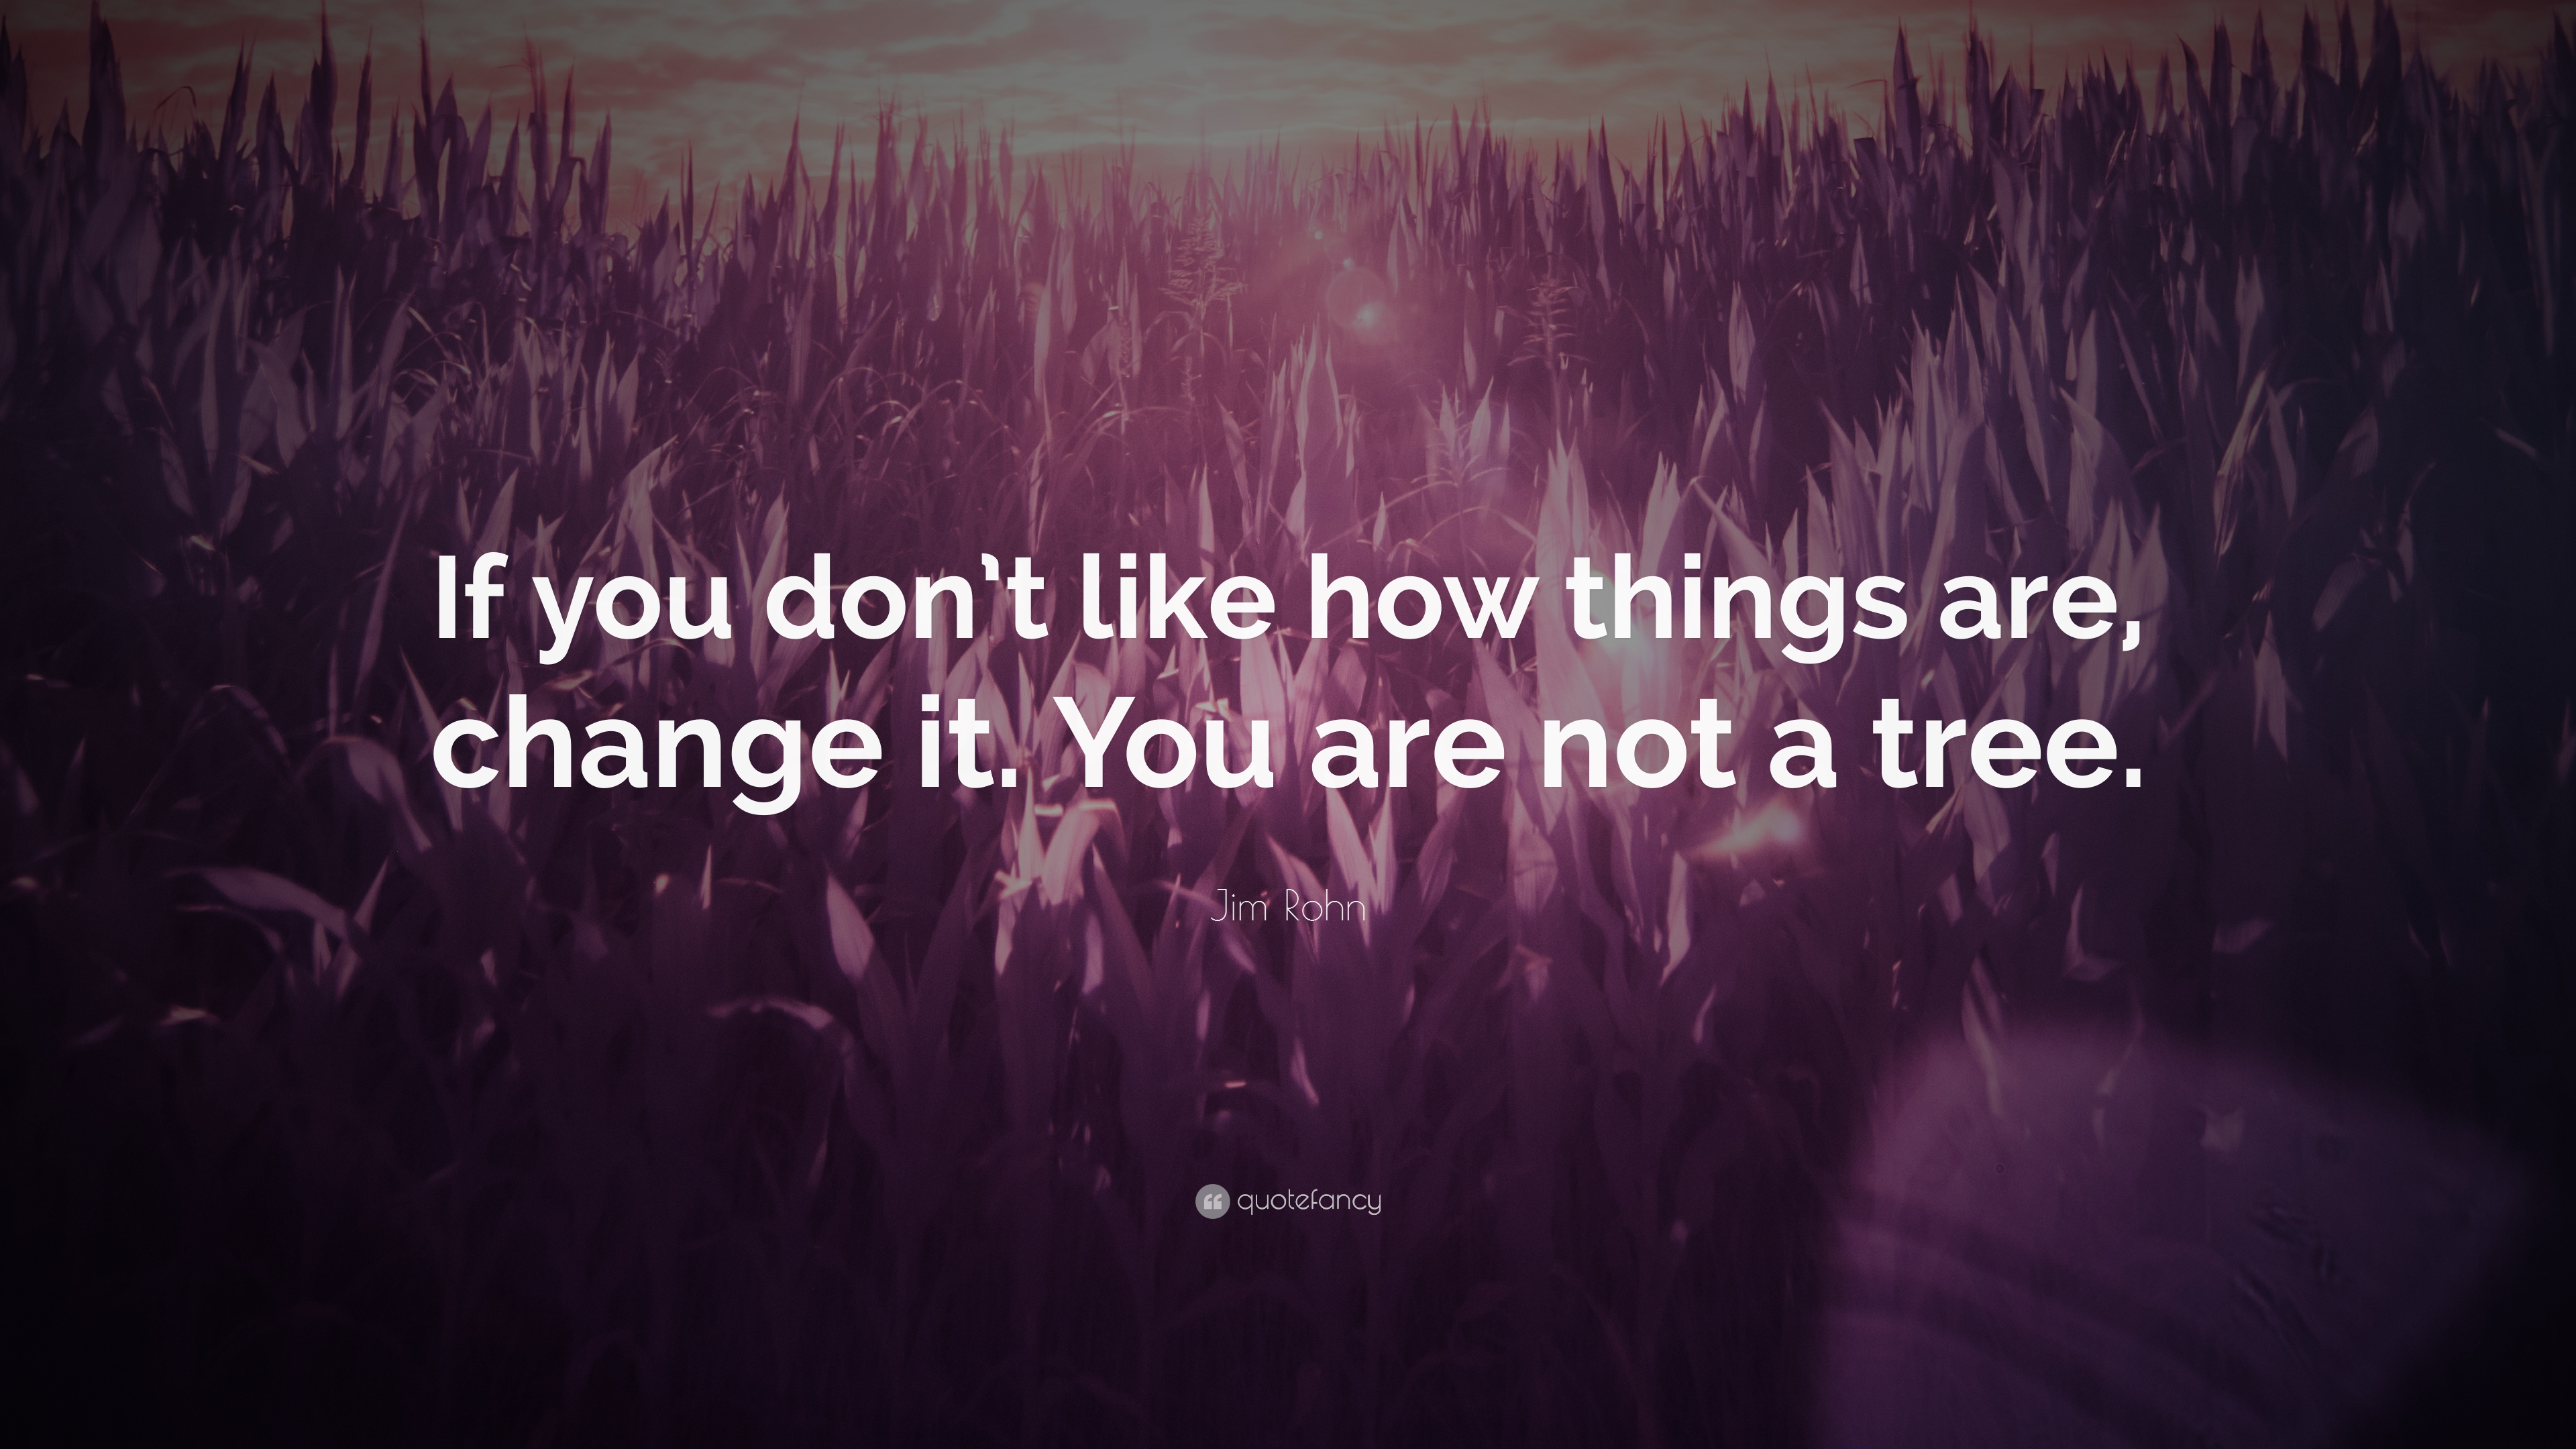 Jim Rohn Quote If You Dont Like How Things Are Change It You